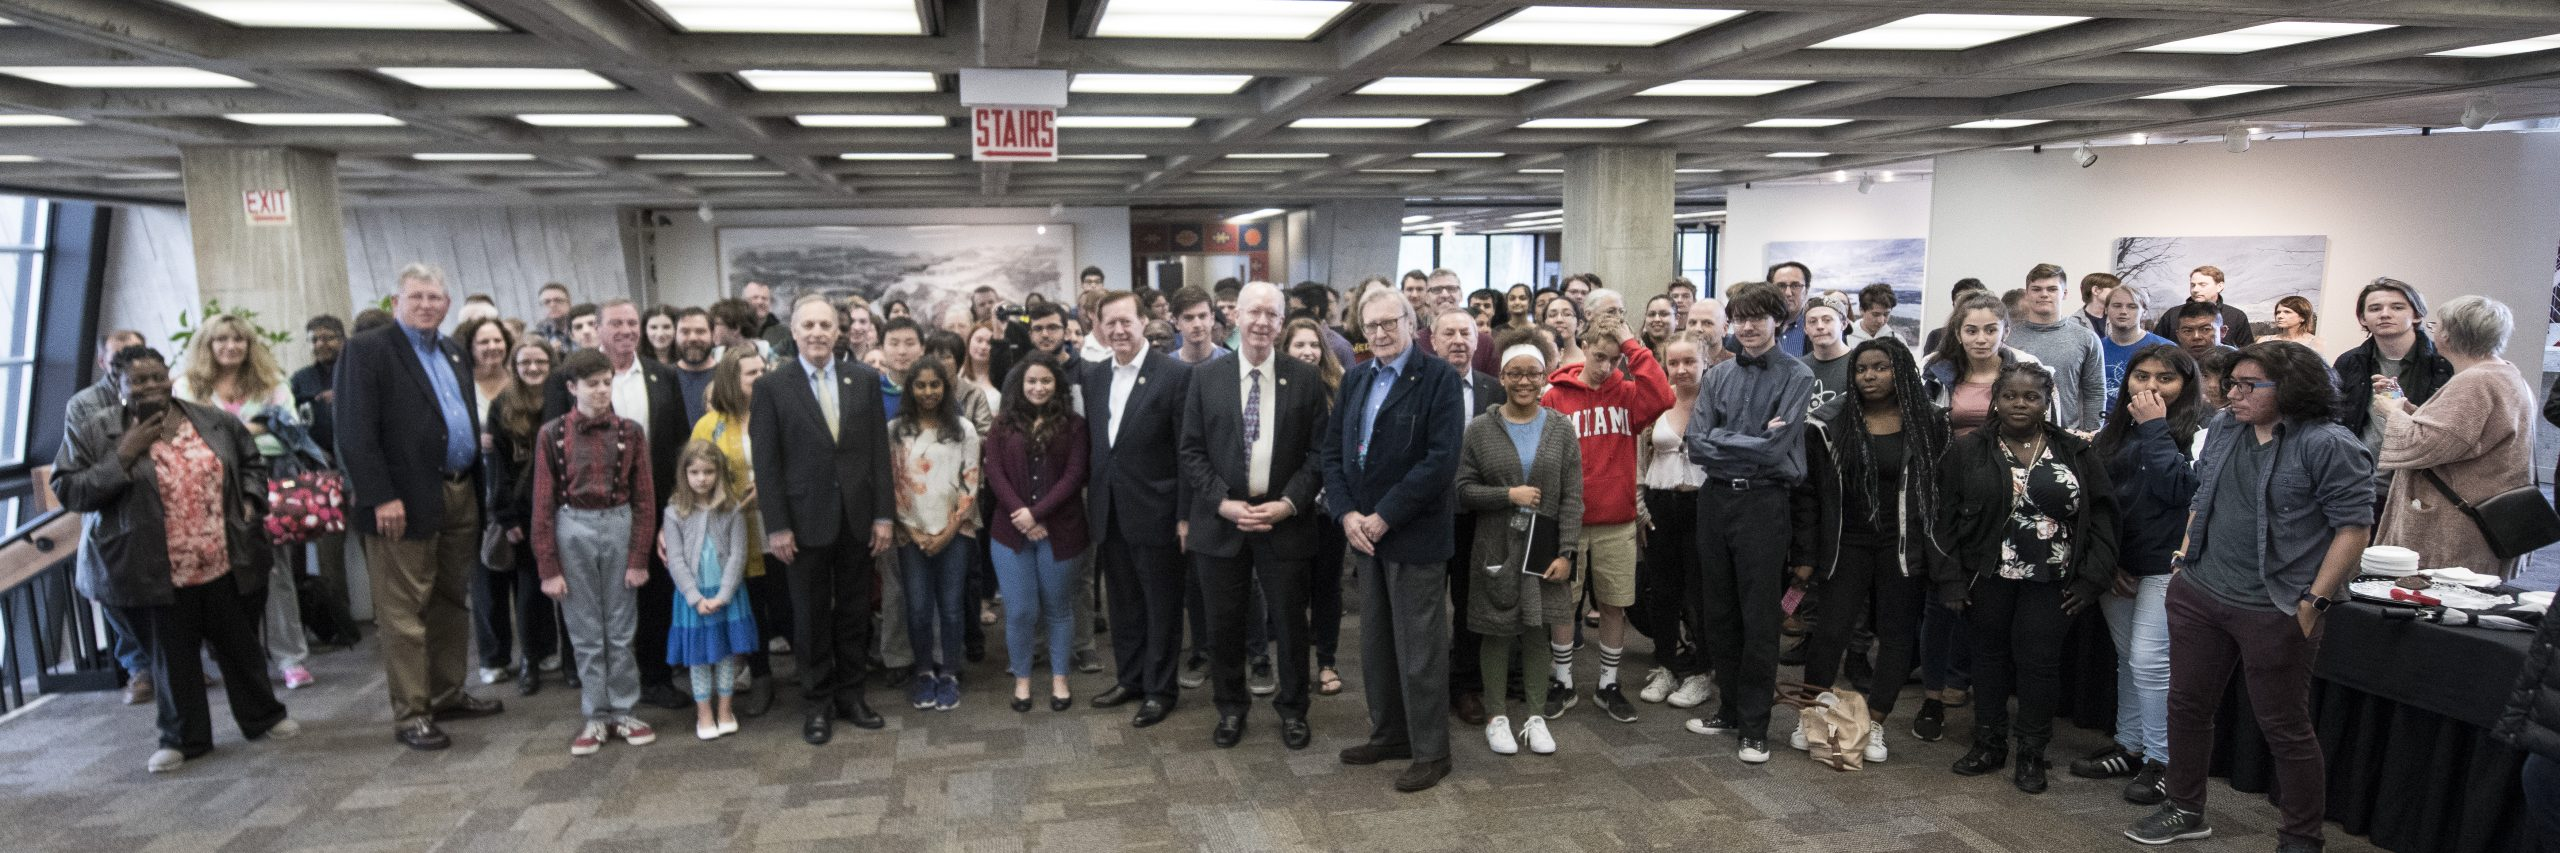 Fermilab Director Nigel Lockyer, Nobel laureate Carlo Rubbia and members of the House Science Committee posed with the high school students of the Spring 2018 Saturday Morning Physics program at Fermilab. Photo: Reidar Hahn